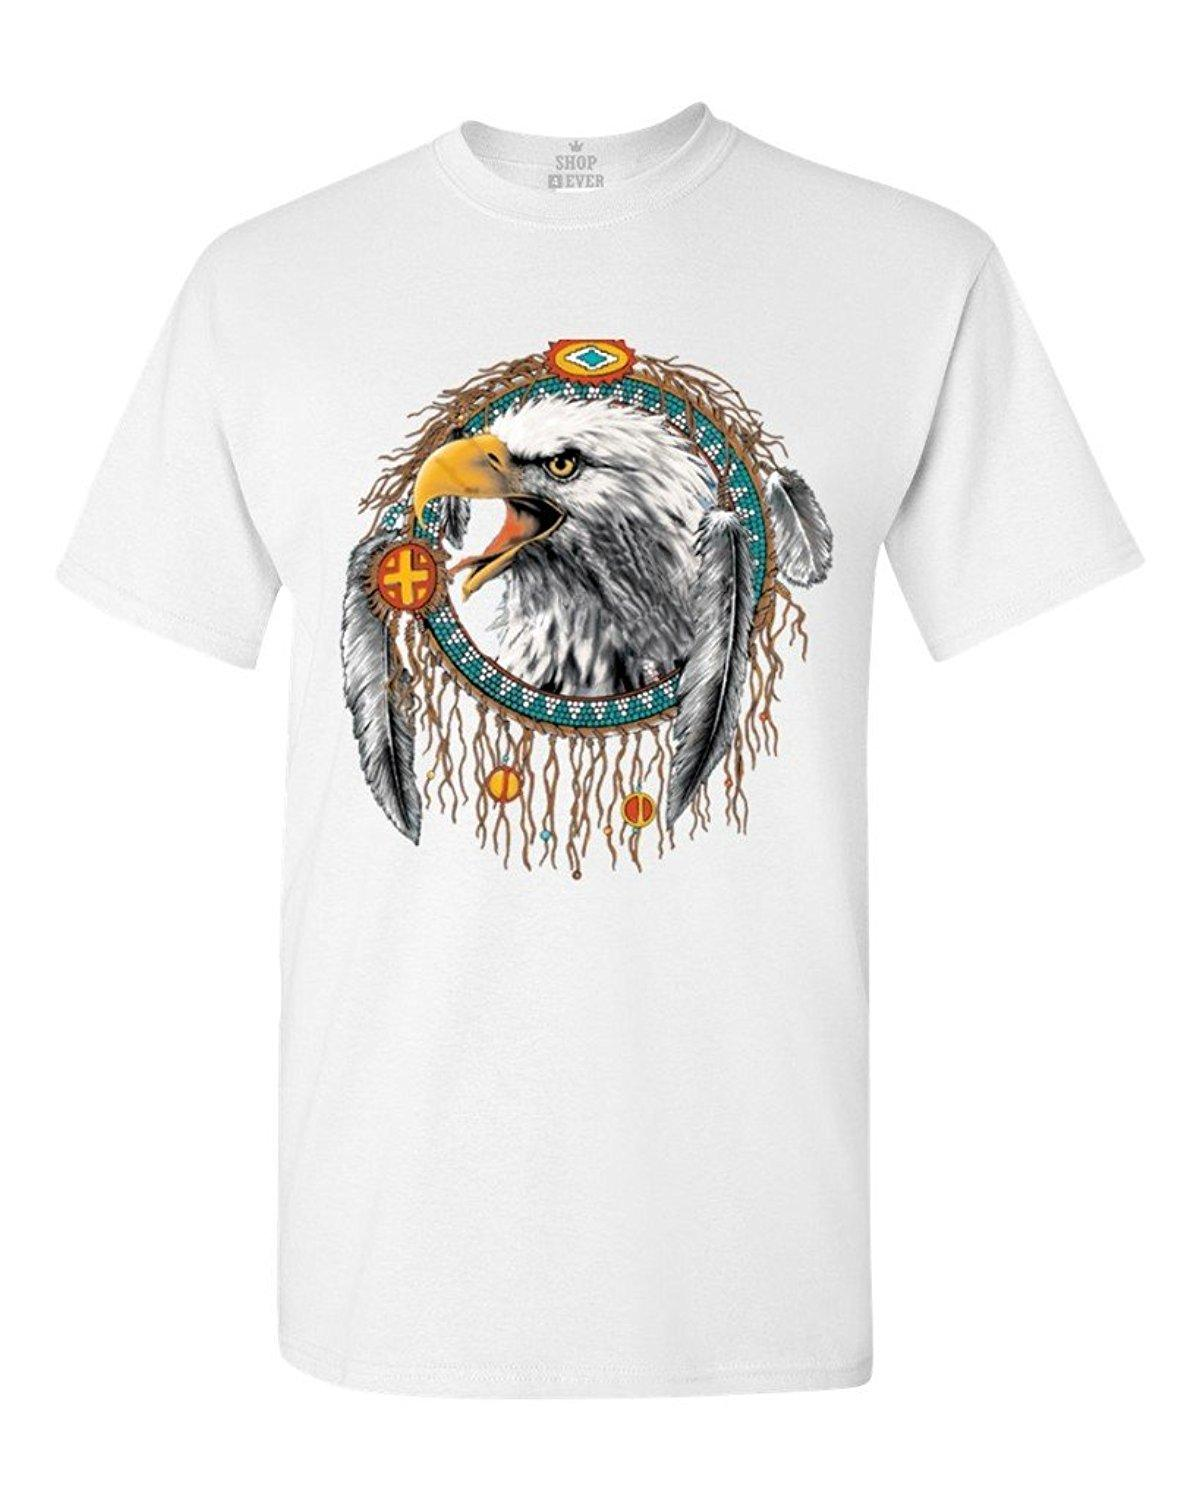 Indigenous clothing online